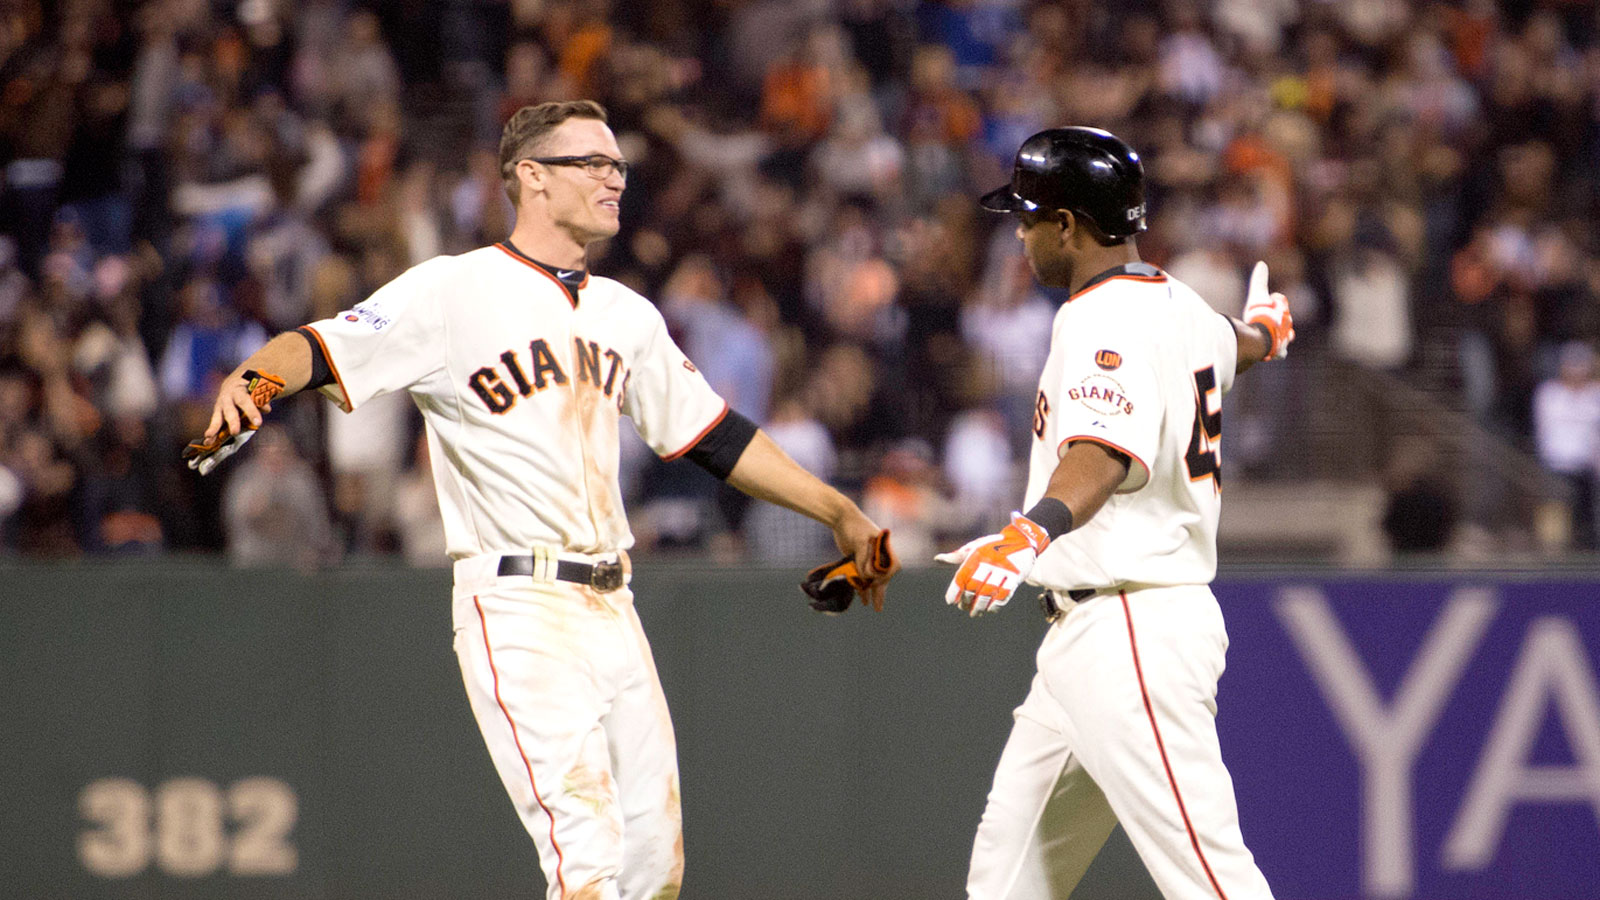 Hold the champagne: Giants beat Dodgers in 12, avoid elimination